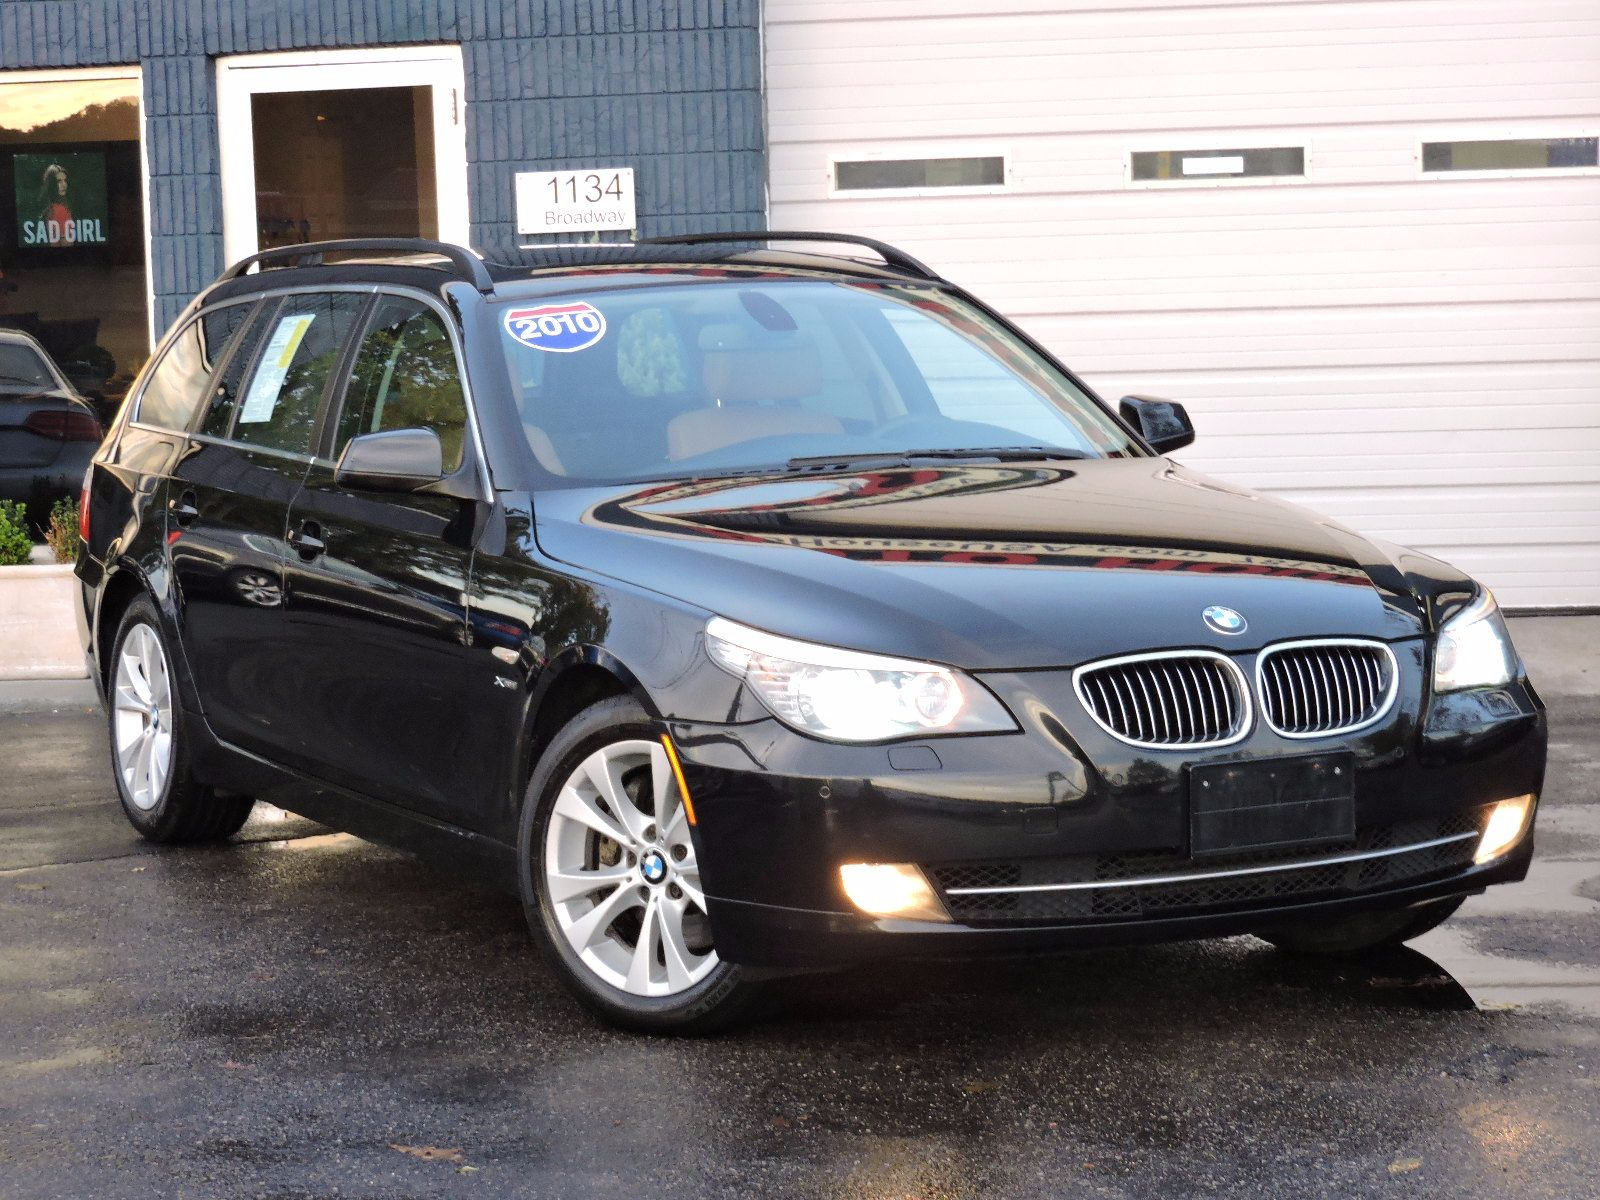 2010 BMW 535i xDrive - All Wheel Drive - Wagon - Navigation